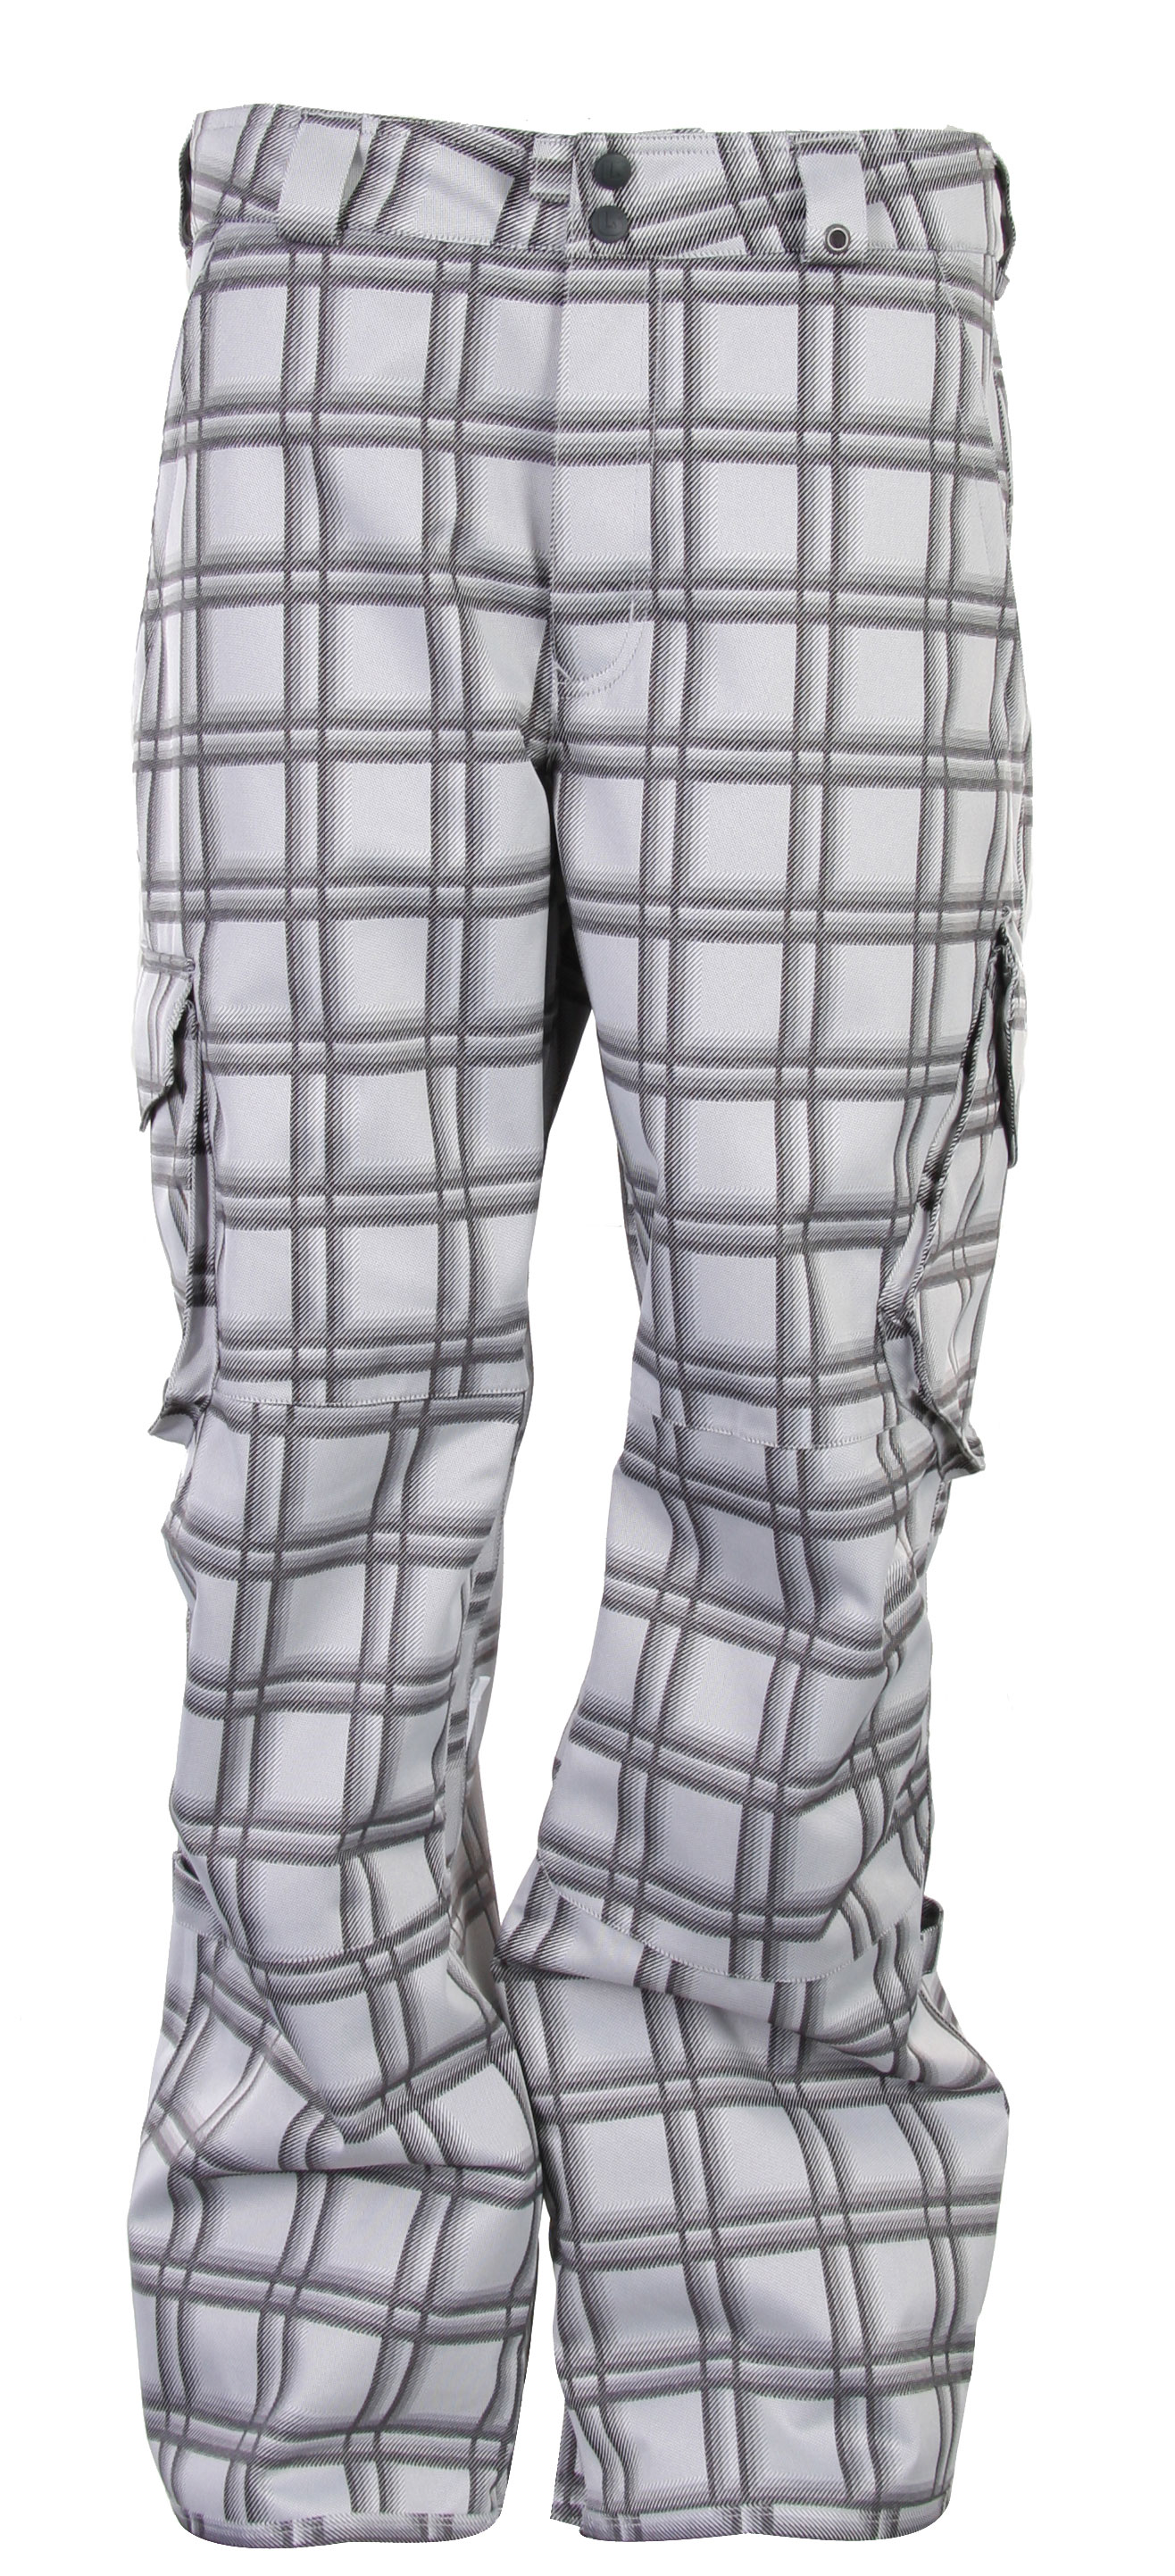 Snowboard The Burton Cargo Snowboard Pants provides an endless list of features making these pants a must-have this winter. Featuring a great bold print design throughout, flaunt it with style and confidence. Made with dryride ultrashell dual layered fabric, lining and venting, these pants are ultra comfortable and will surely keep you warm all day long. Dryride fabrication provides extra comfort. Stay dry and comfortable all throughout your snow adventure.Key Features of The Burton Cargo Snowboard Pants: 10,000mm Waterproof 5,000g Breathability DRYRIDE Durashell 2-Layer Coated Fabric [10,000MM, 5,000G] Fully Taped Seams Mesh Lining Includes Burton Pants Features Package Also available in Short and Tall Lengths Bellowed Cargo Pockets Curacao and Chlorophyll available in GMP and non GMP colorways Sig Fit - $82.95